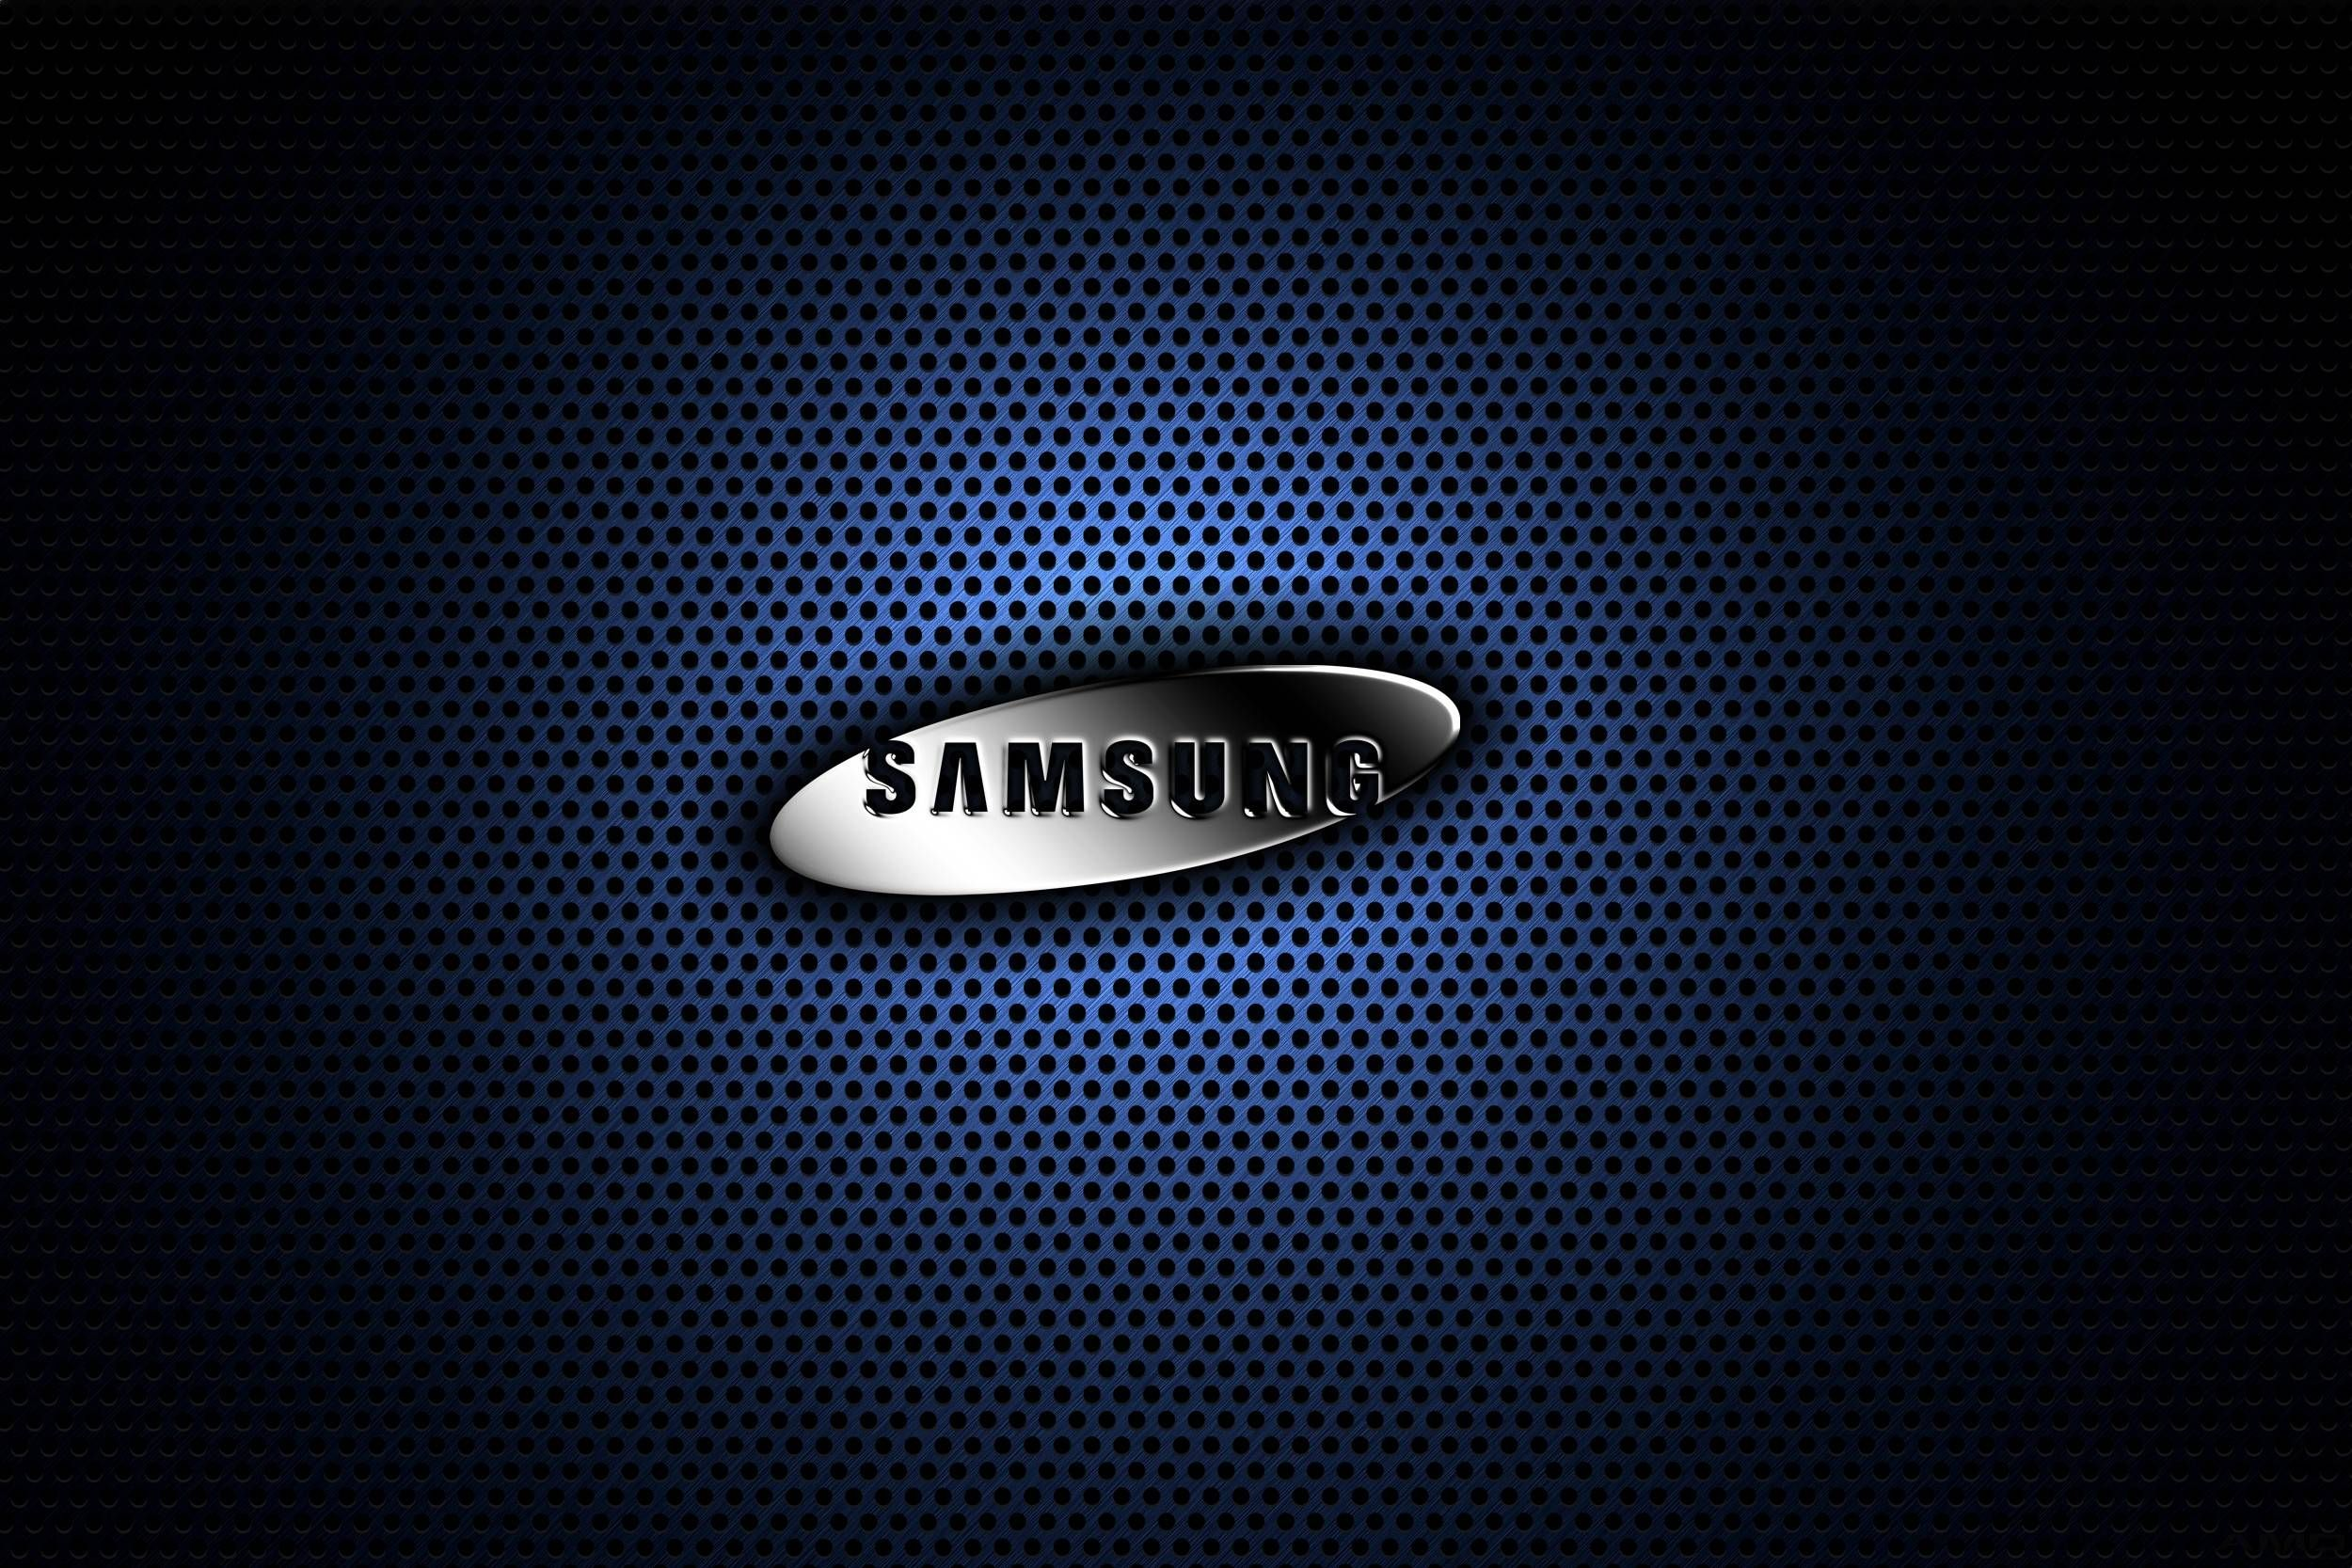 Samsung Logo Wallpapers Wallpaper